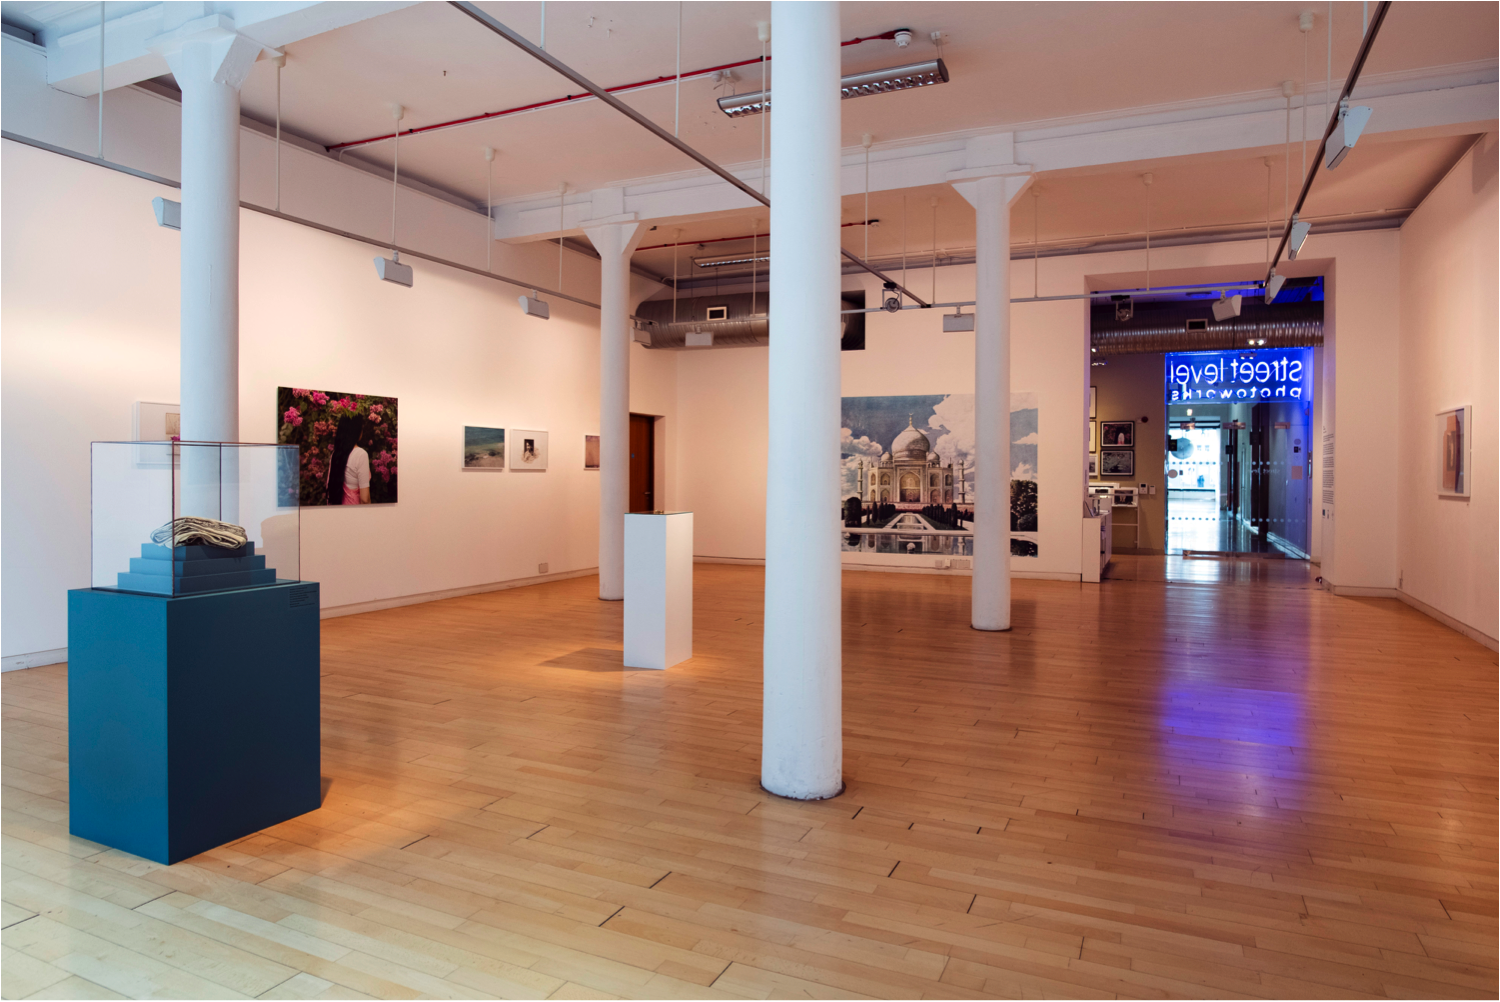 Photograph showing the interior of Street Level Photoworks gallery, with photographs displayed on the wall and an object in a display case with a blue plinth to the left. A neon sign reading 'Street Level Photoworks' can be seen in the doorway to the right, viewed from behind so as if mirrored.